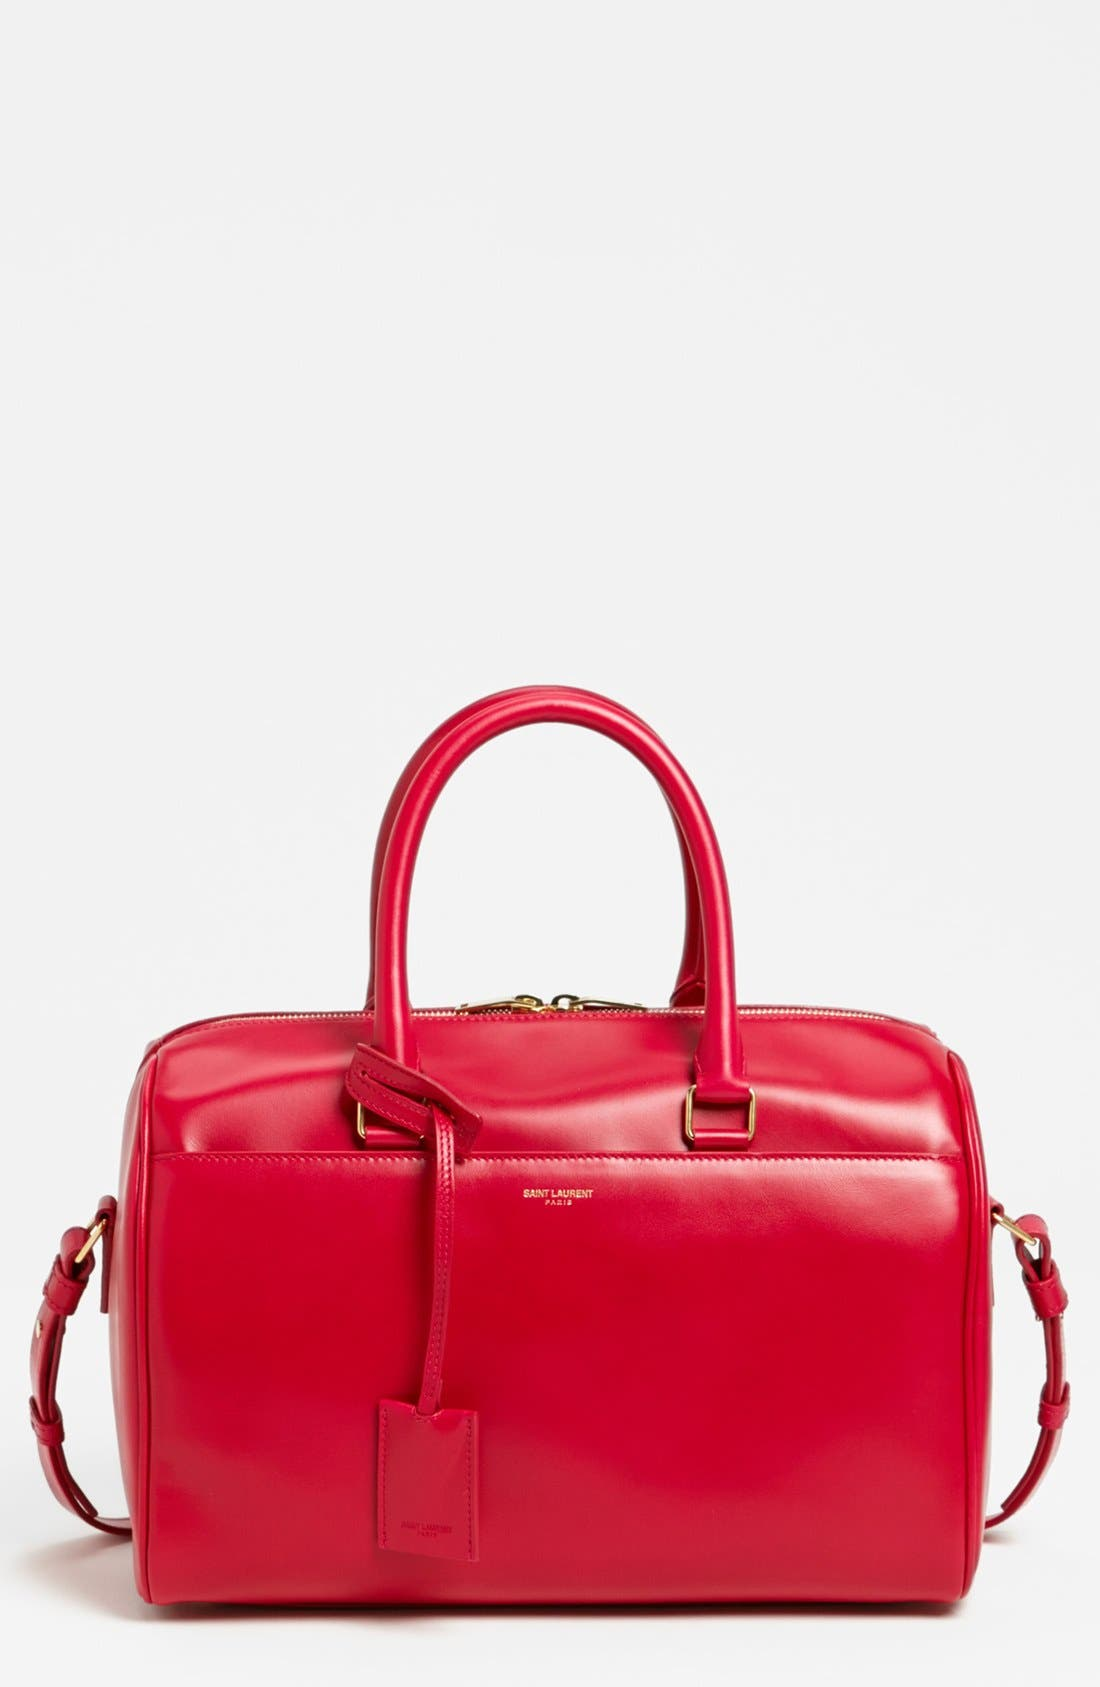 Alternate Image 1 Selected - Saint Laurent 'Medium Duffle 6' Leather Satchel